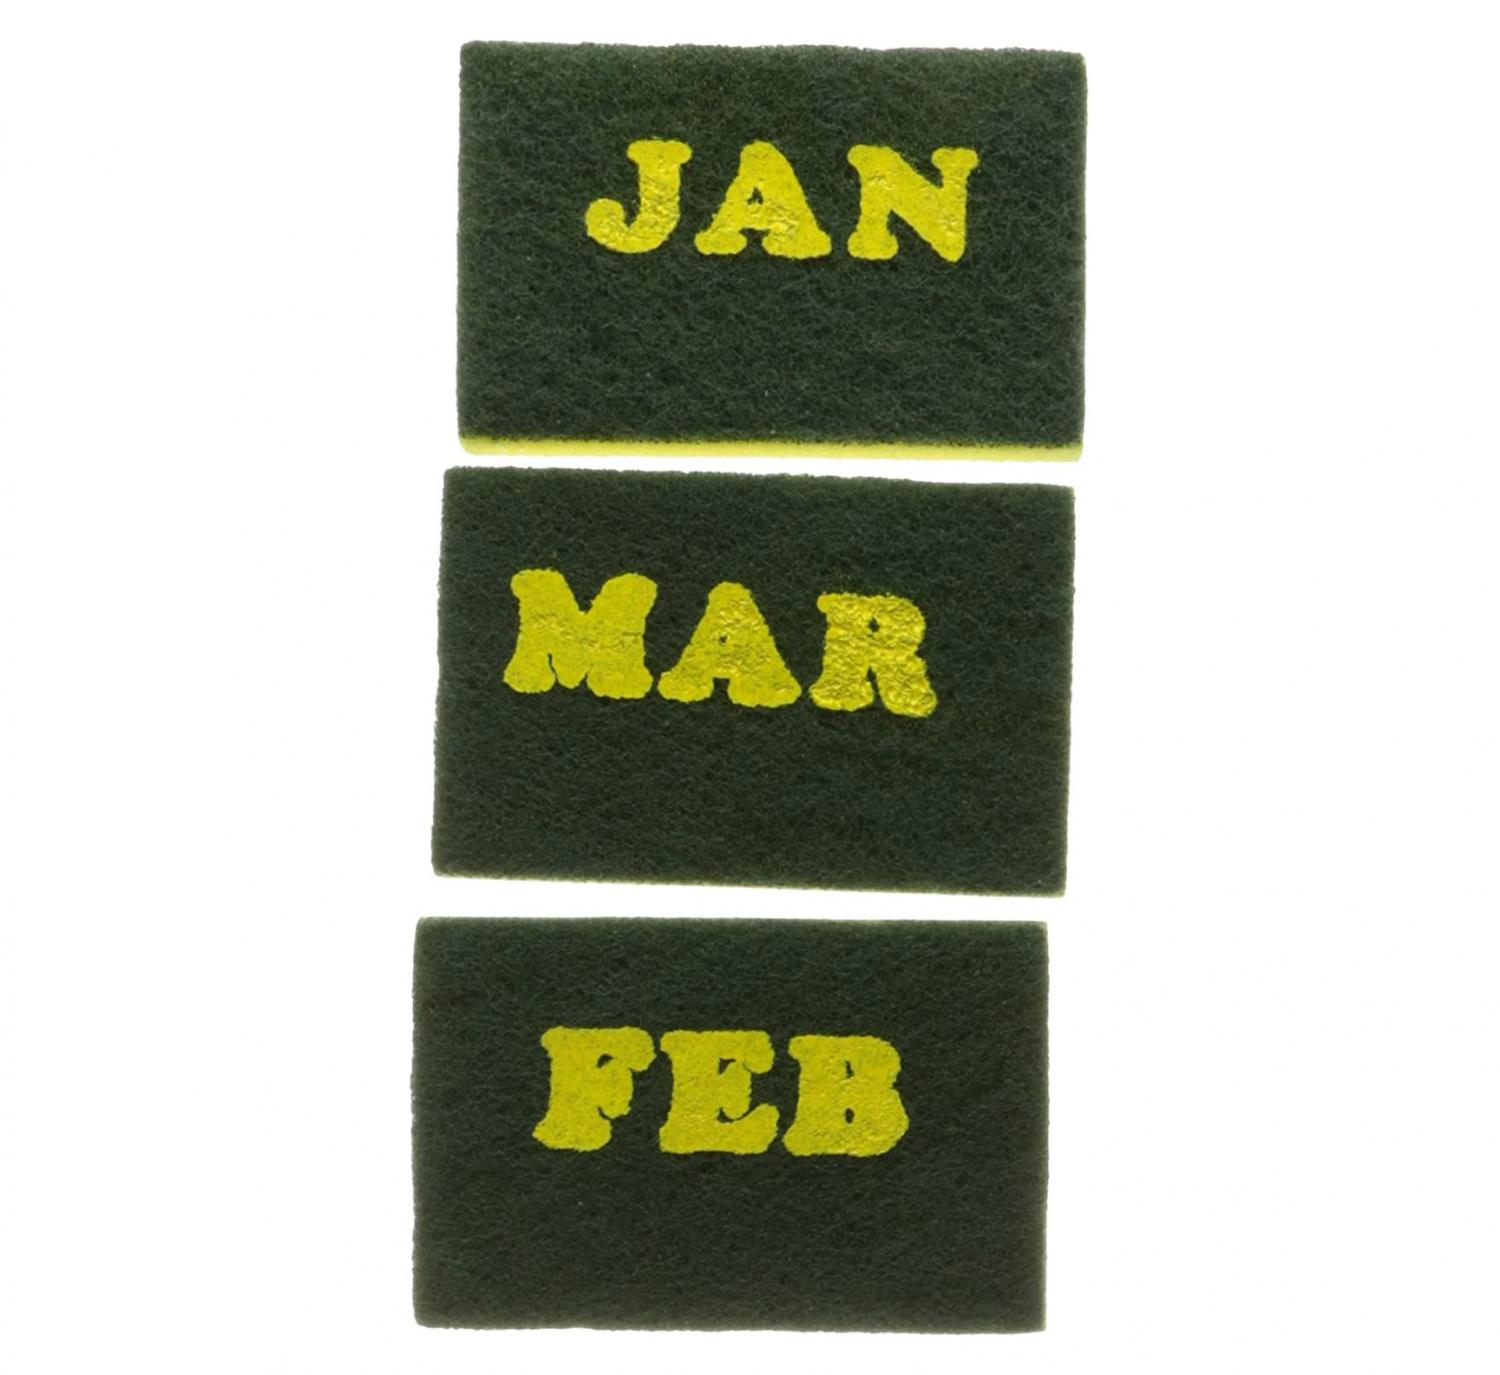 Calendar Sponges - Sponges With Months Written On Them